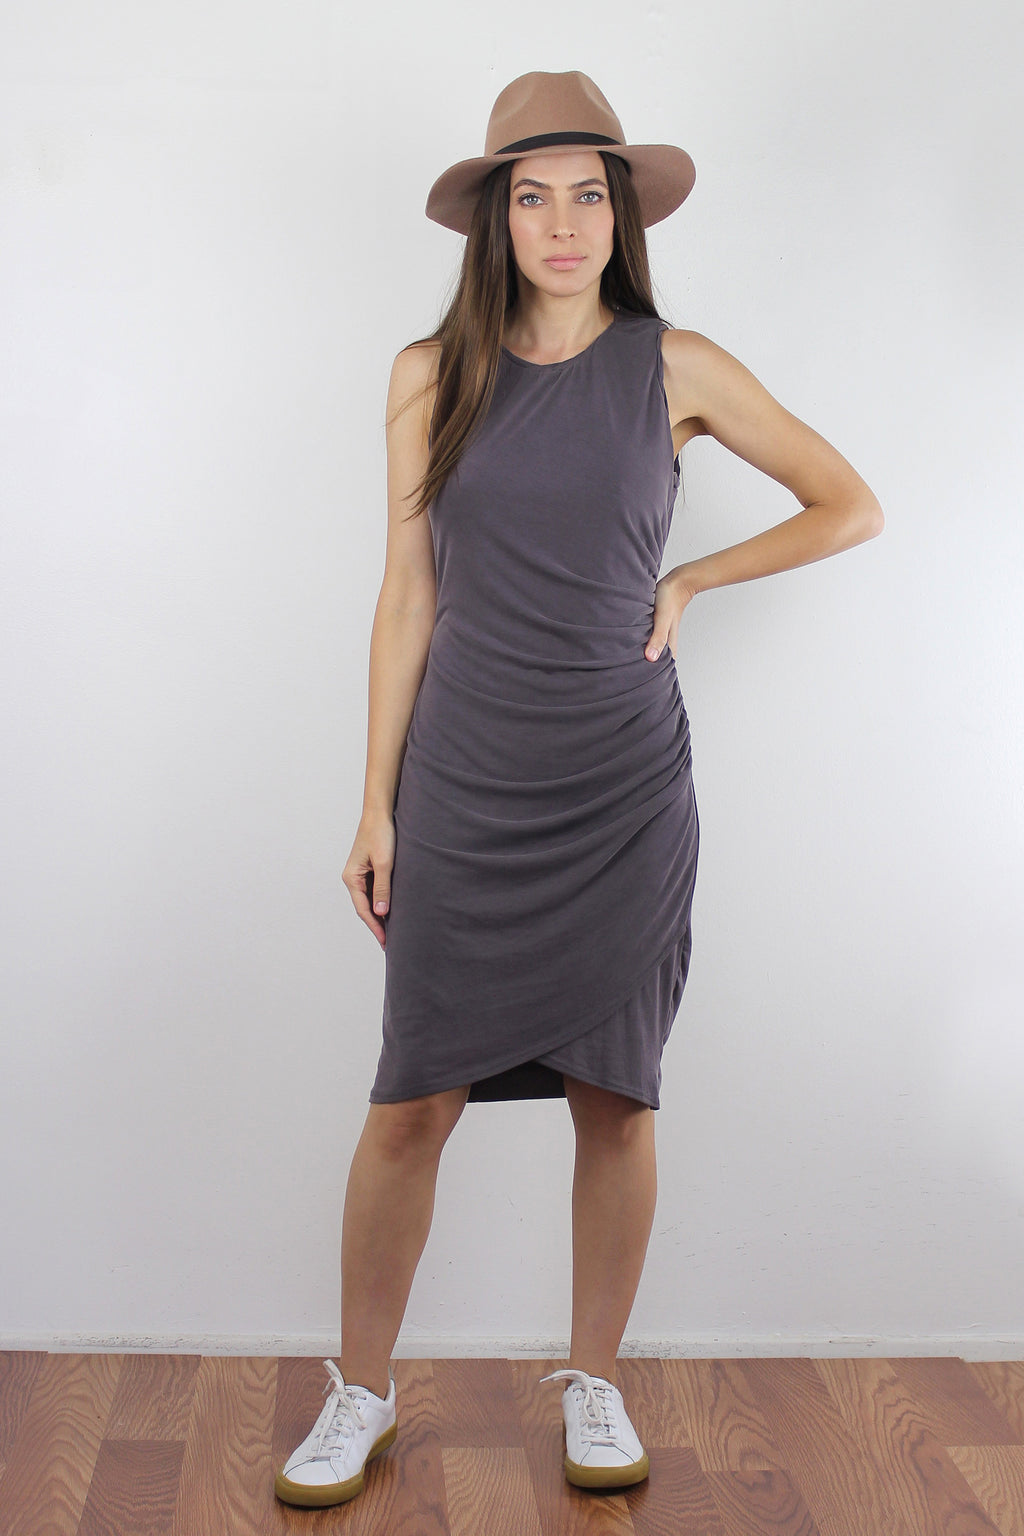 Ruched dress in Dusty Mocha.